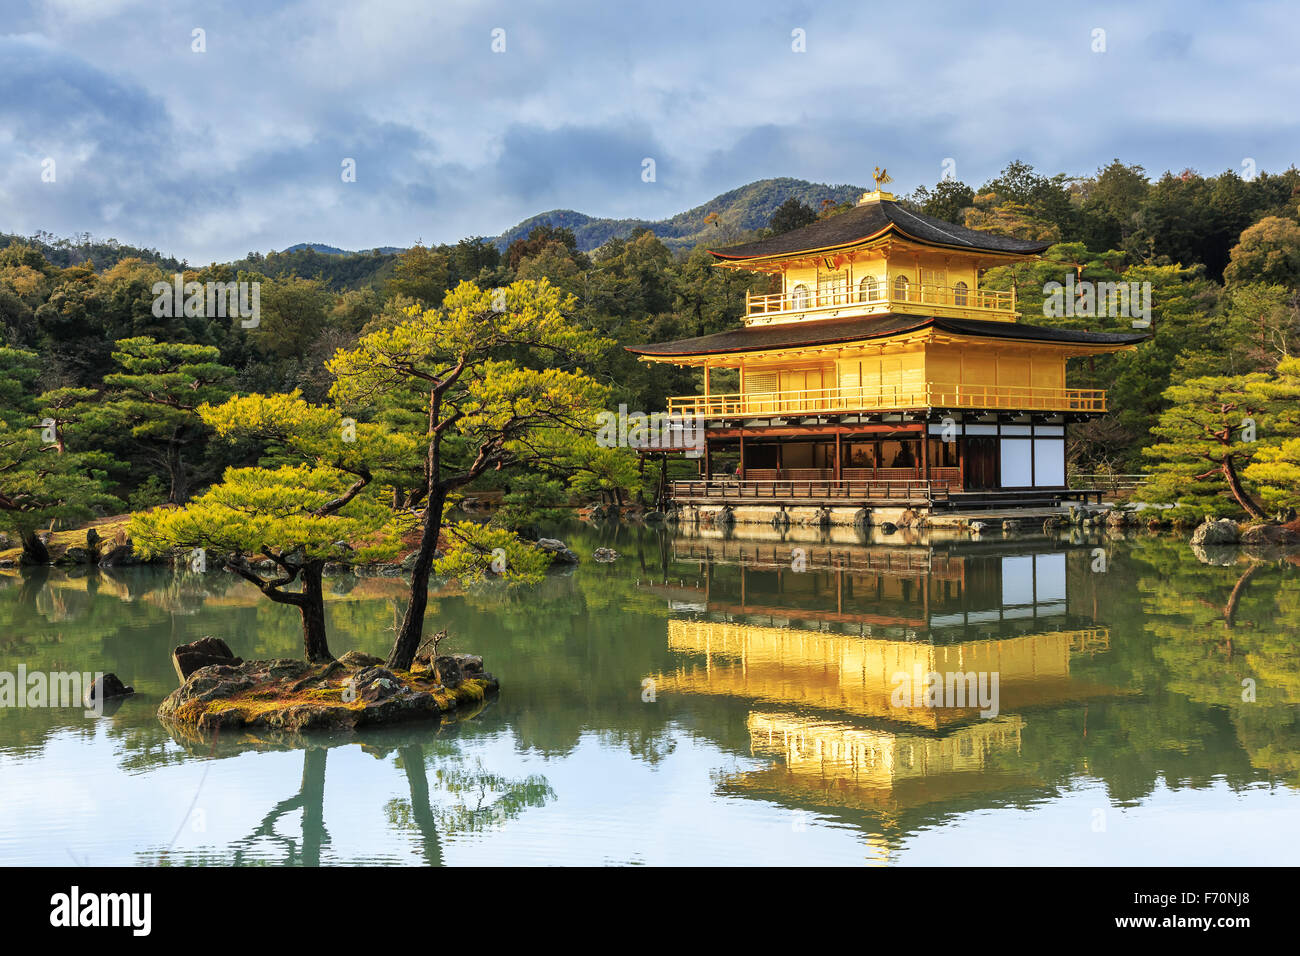 Golden Pavilion at Kinkakuji Temple, Kyoto Japan - Stock Image